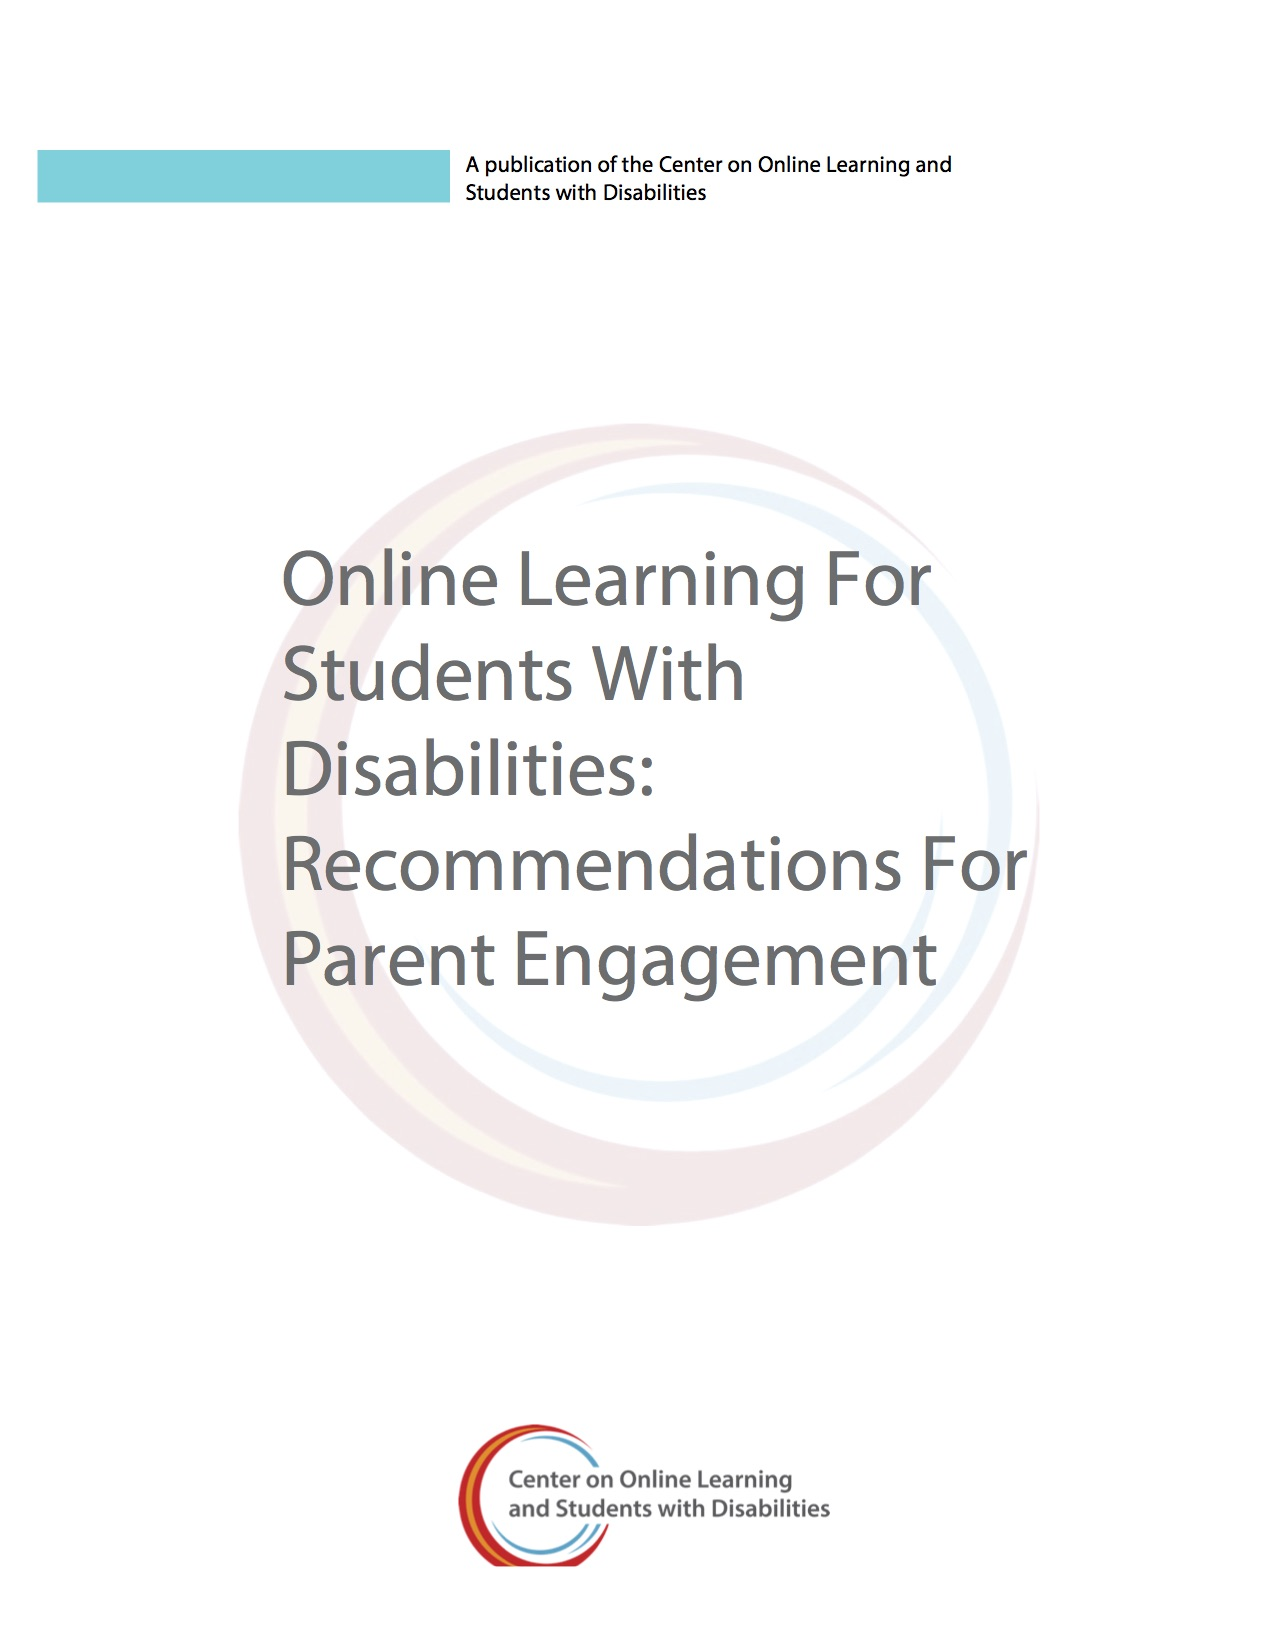 Online Learning For Students With Disabilities: Recommendations For Parent Engagement